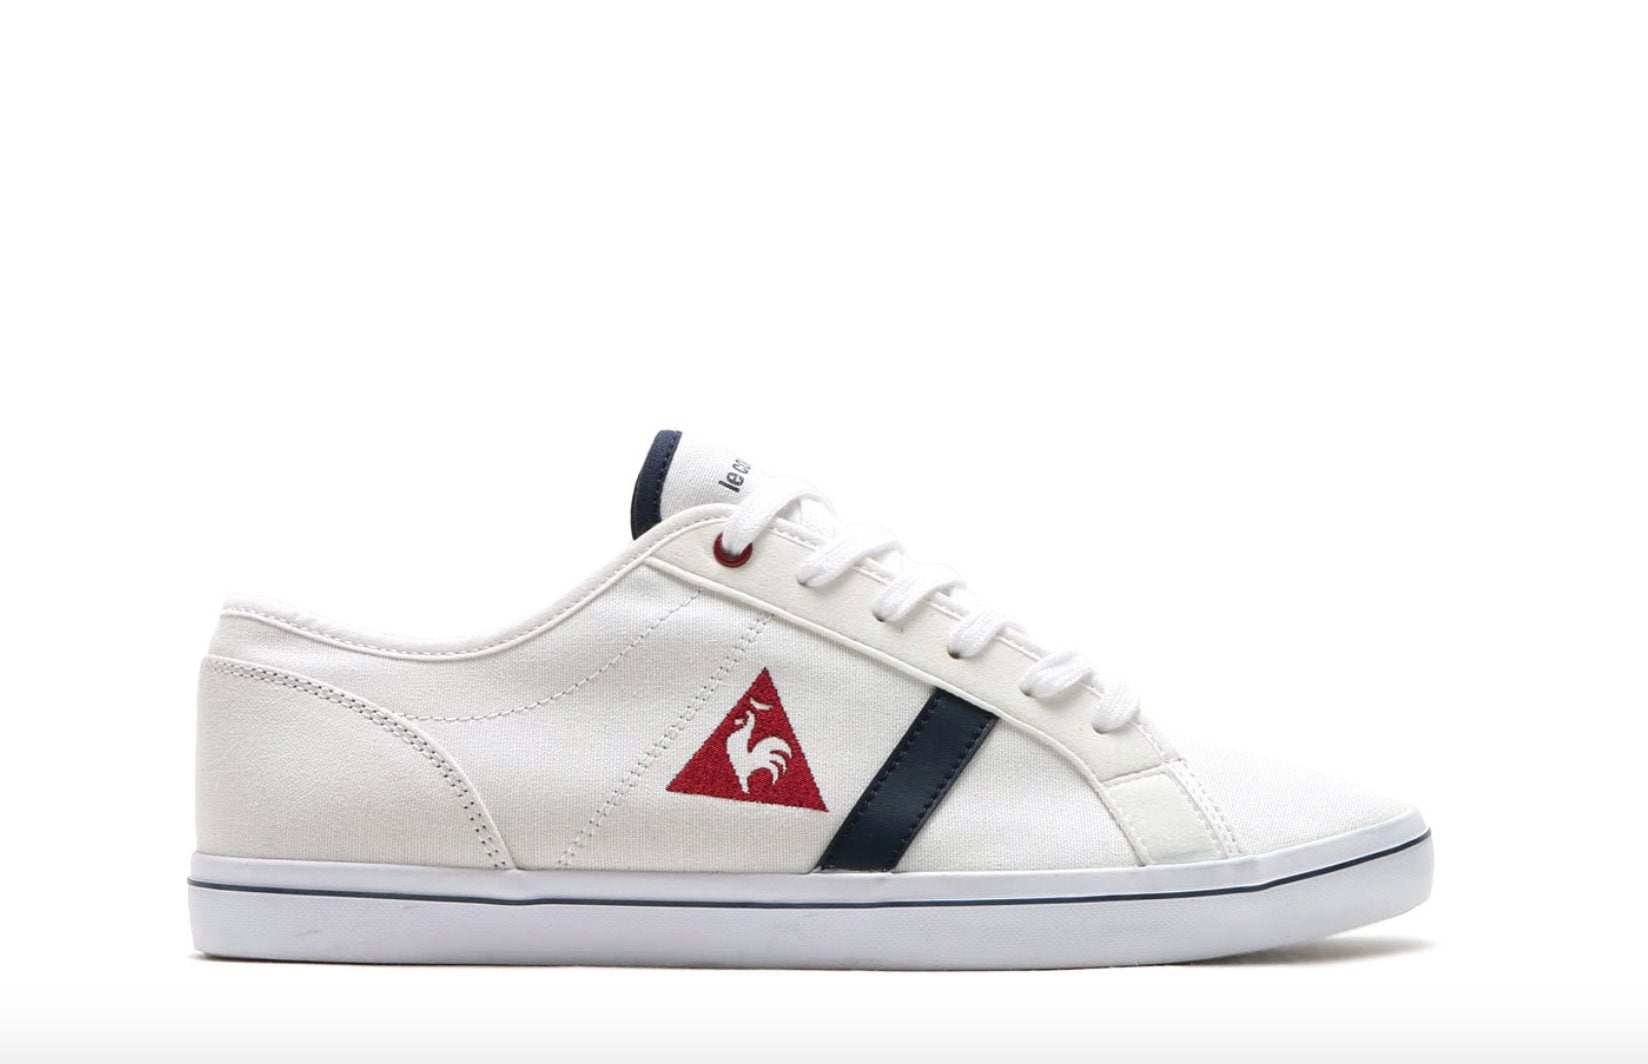 931ebda761 le coq sportif Aceone CVS Optical White 1620152 Famous Rock Shop. 517  Hunter Street Newcastle ...